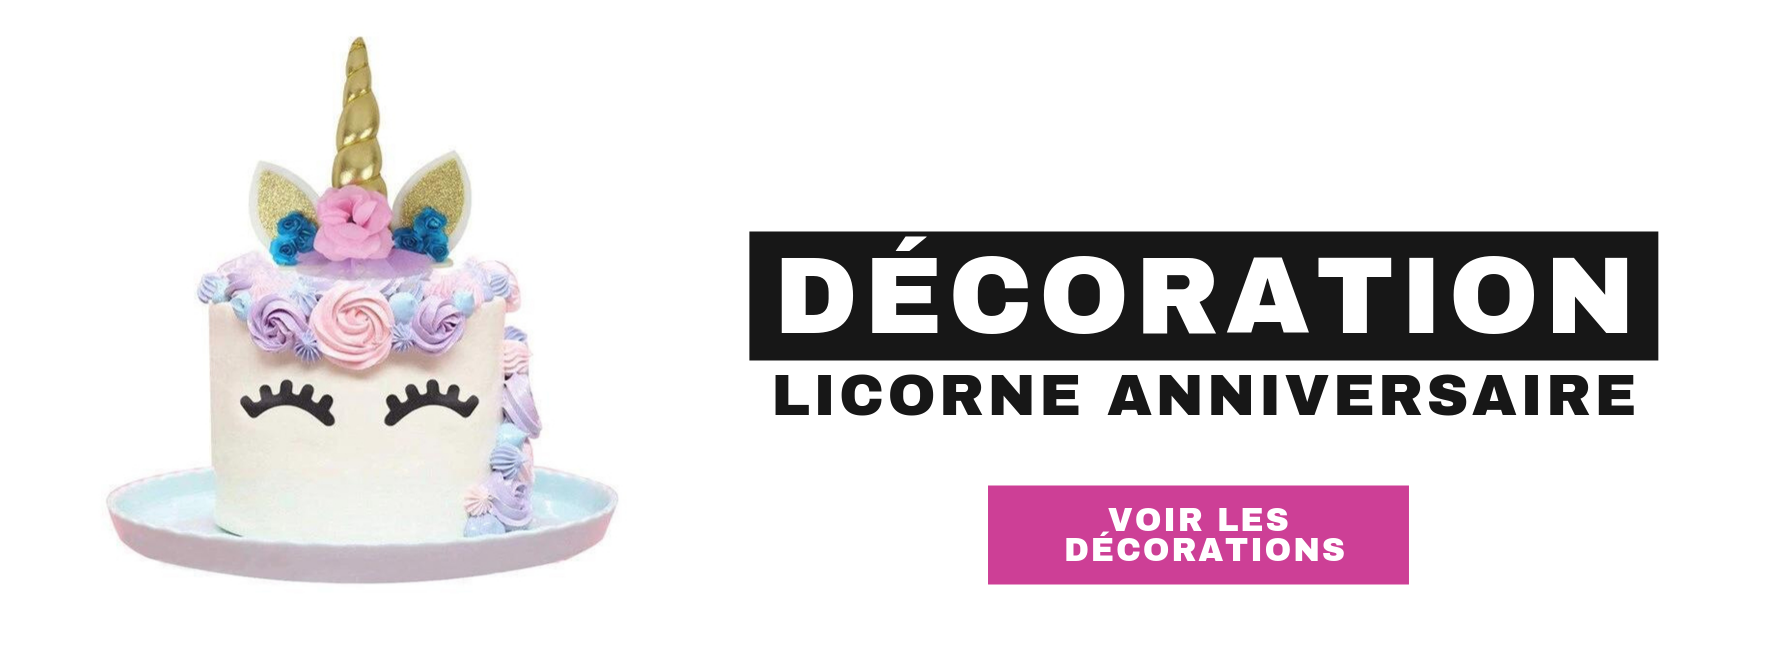 decoration_licorne_anniversaire